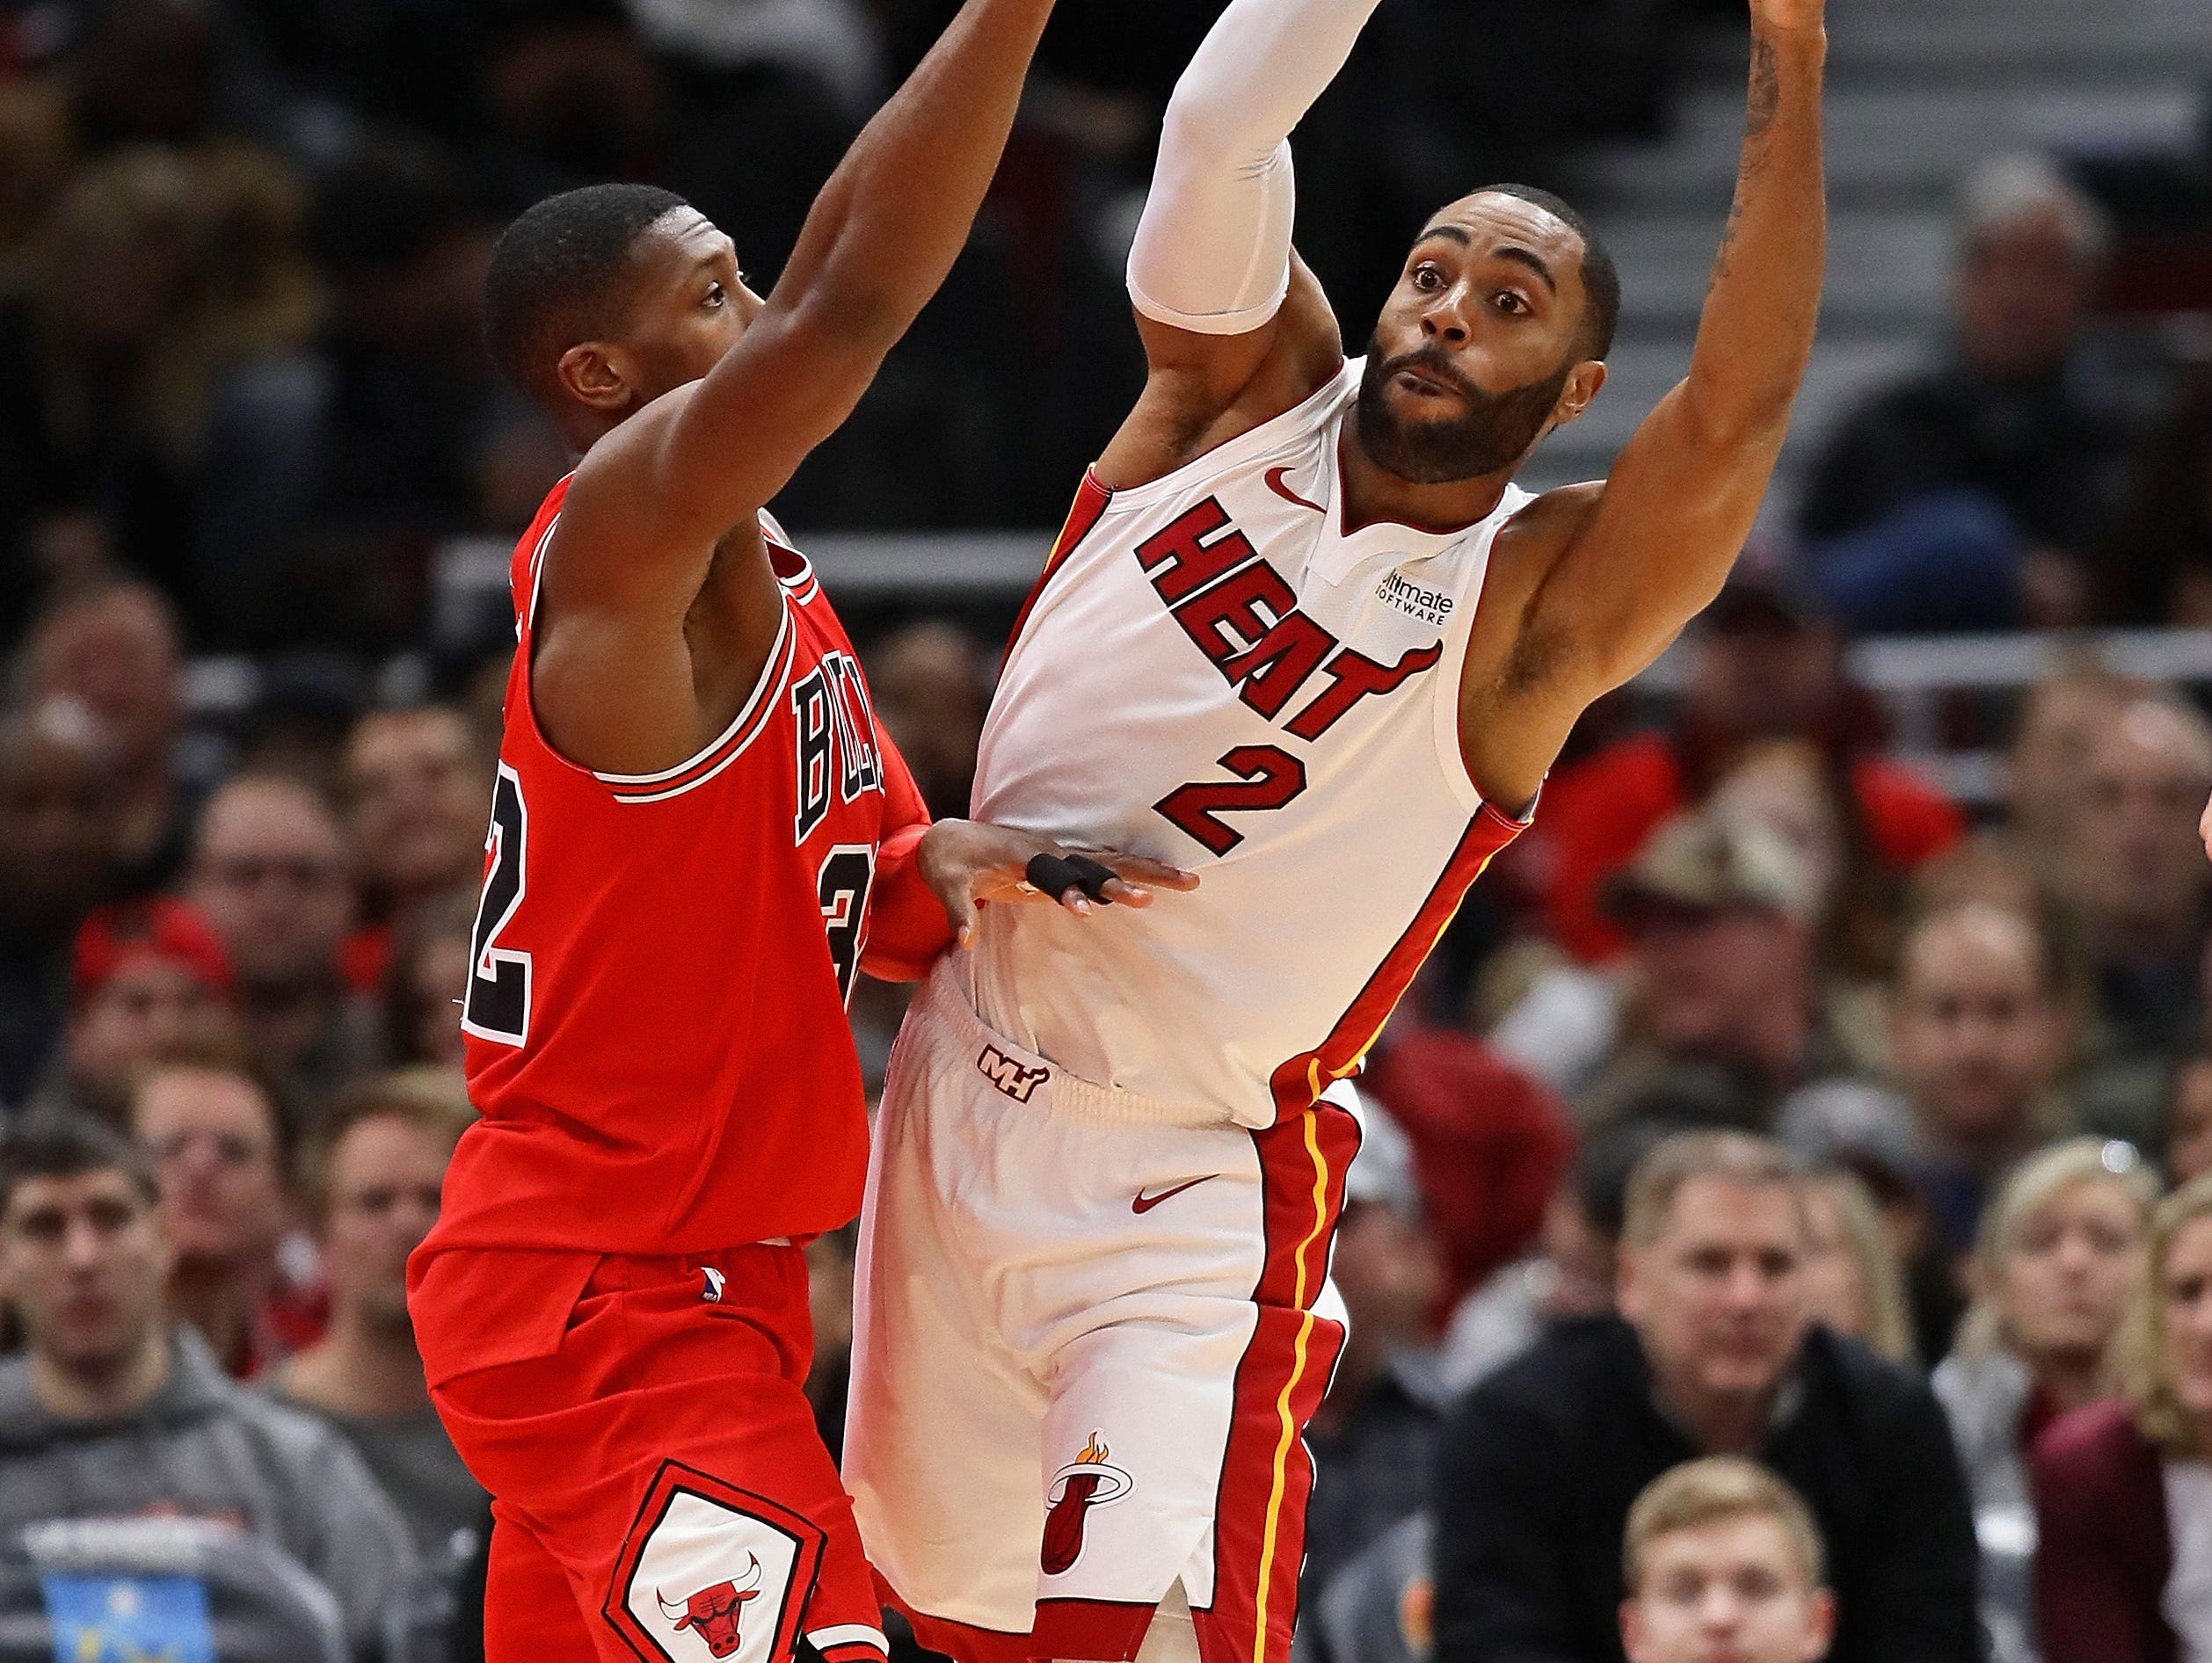 Wayne Ellington of the Miami Heat passes under pressure from Kris Dunn of the Chicago Bulls on Jan. 15, 2018.